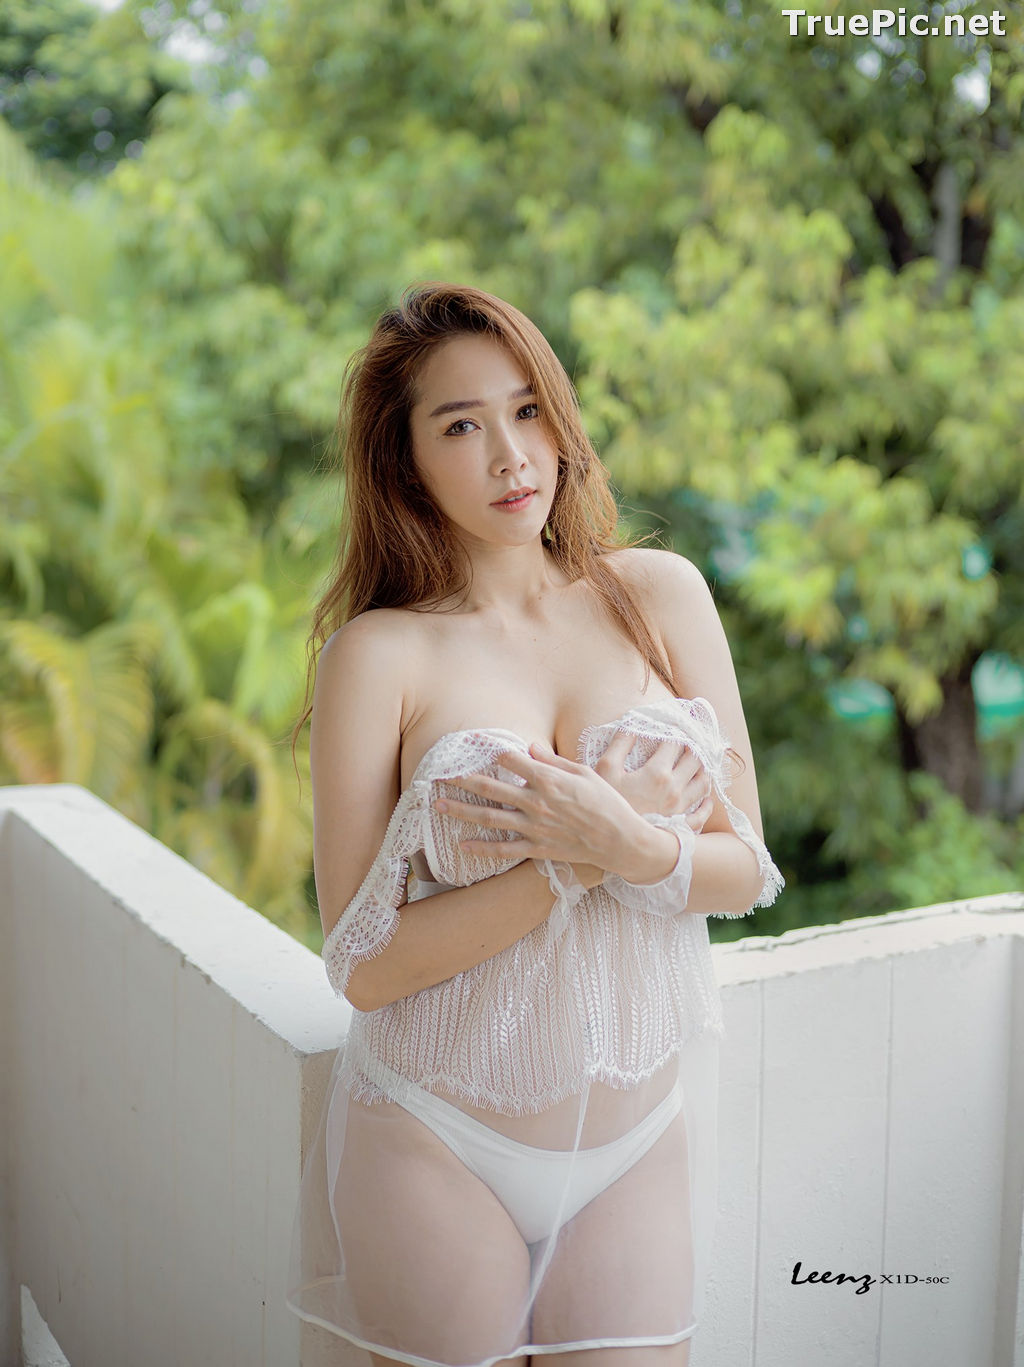 Image Thailand Model - Mananya Benjachokanant - Beautiful In White - TruePic.net - Picture-9